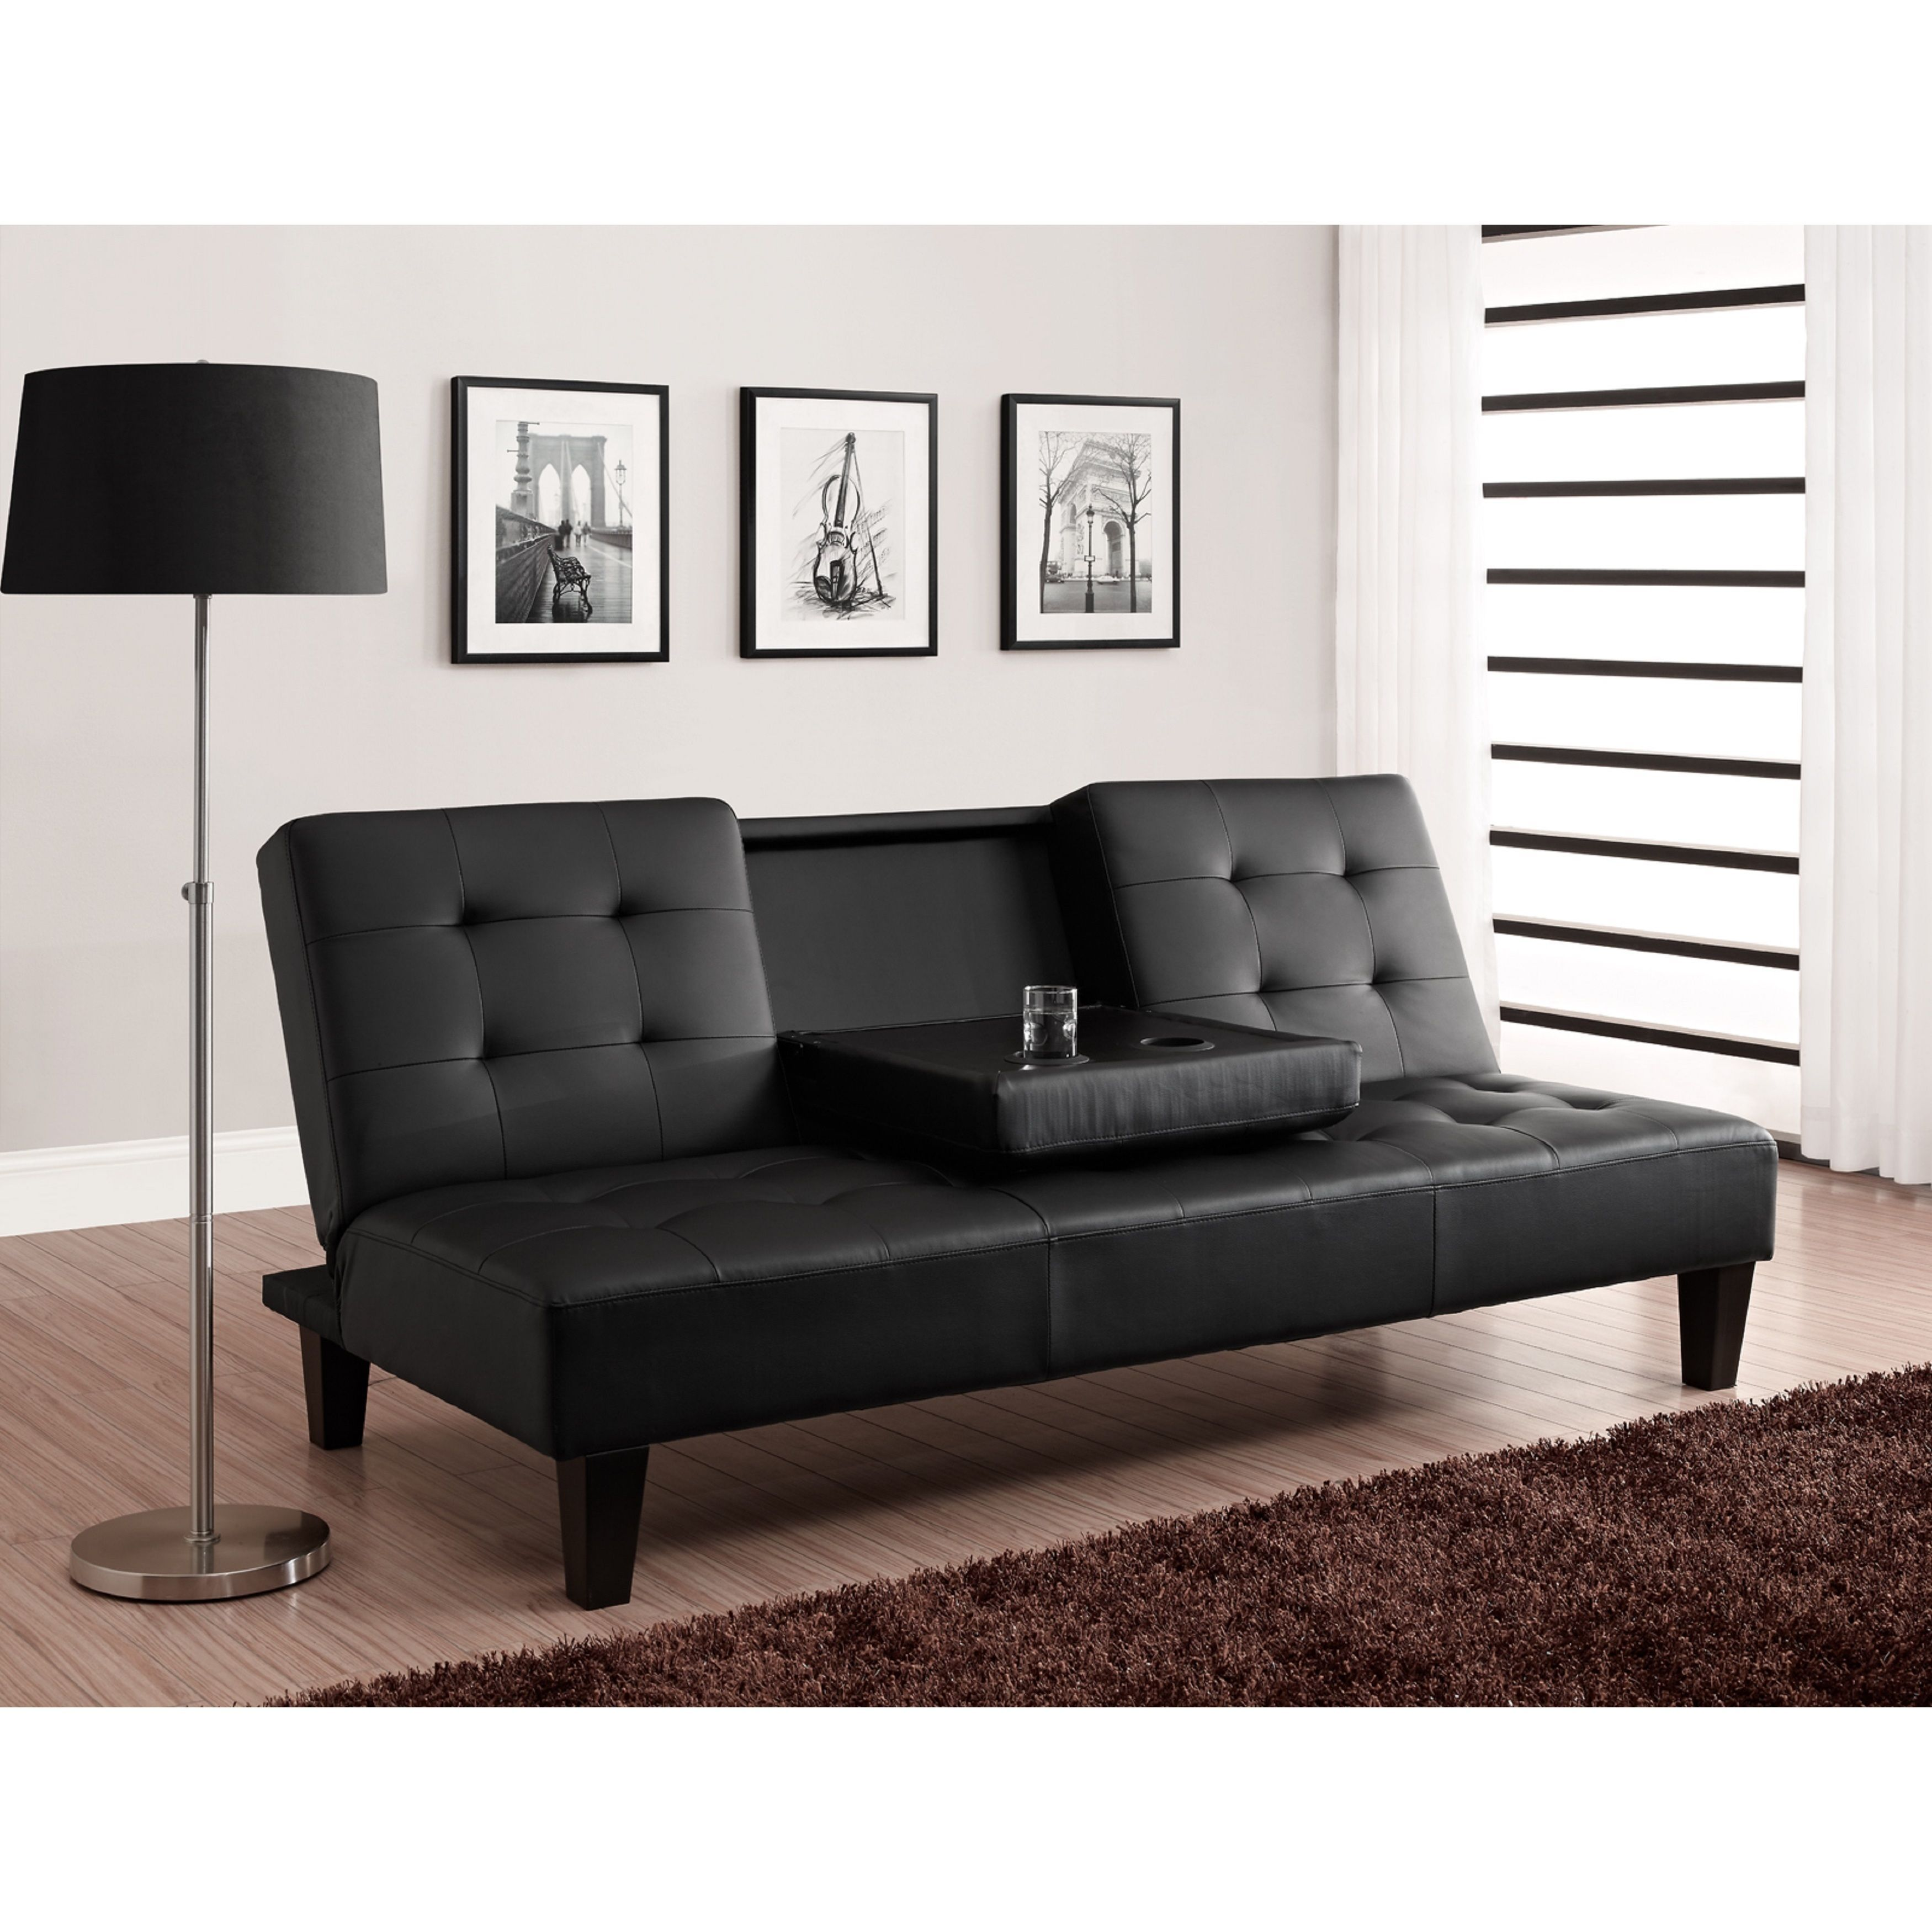 fort and class collide with the Julia Convertible Sofa Bed with